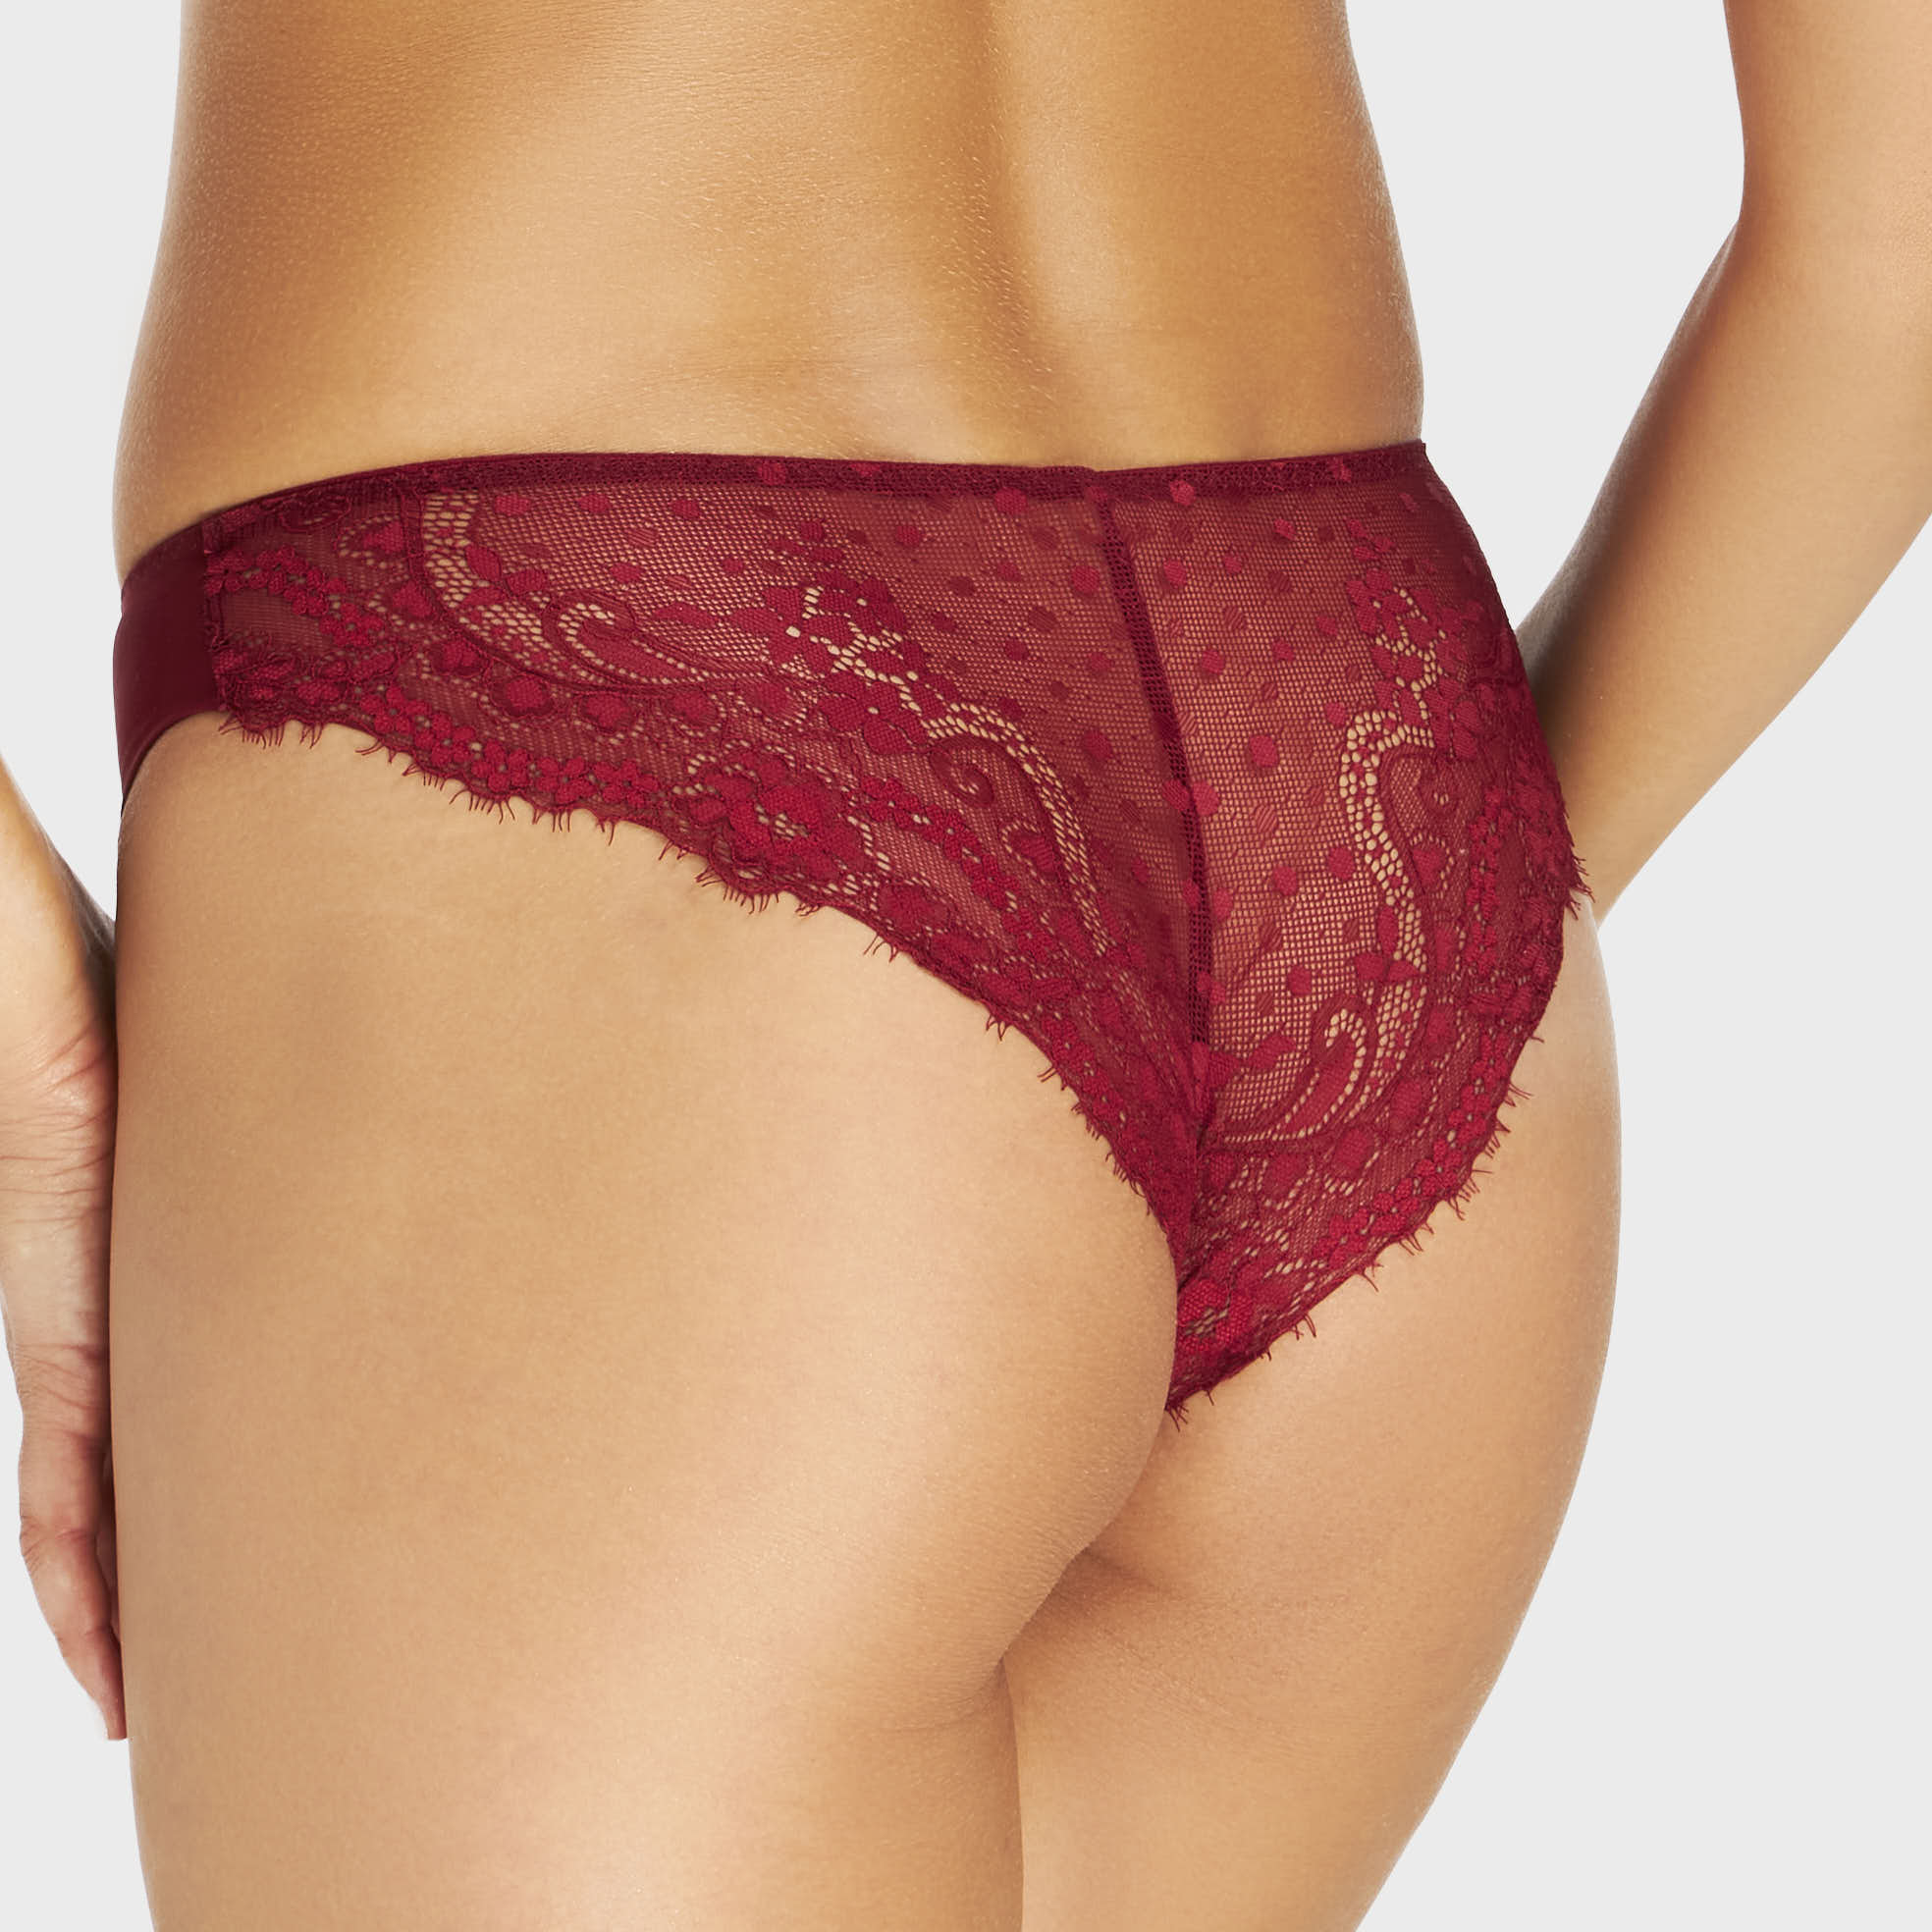 Rose Red lace bikini panty